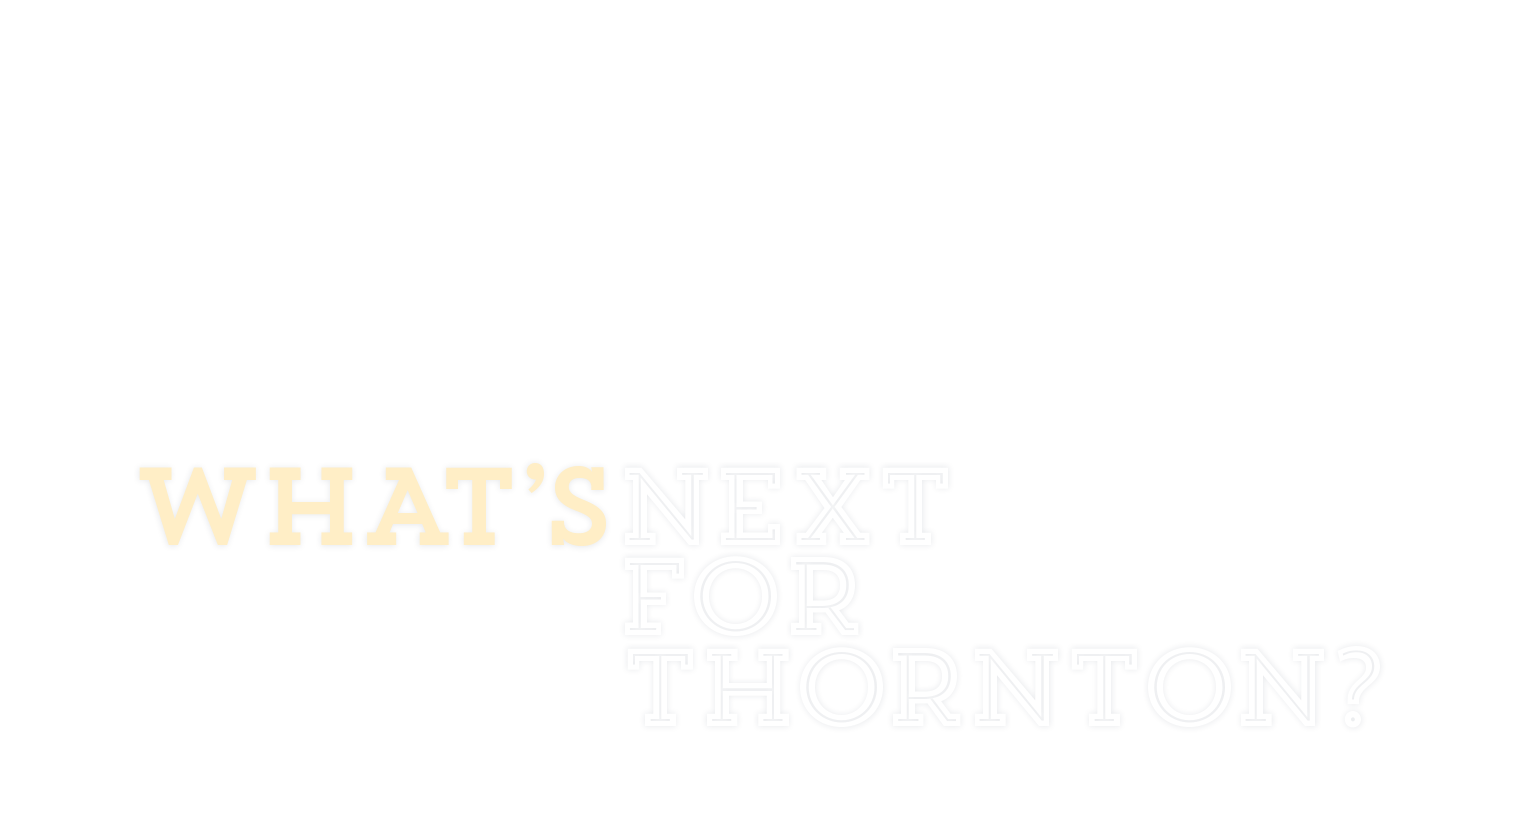 What's next for Thornton?